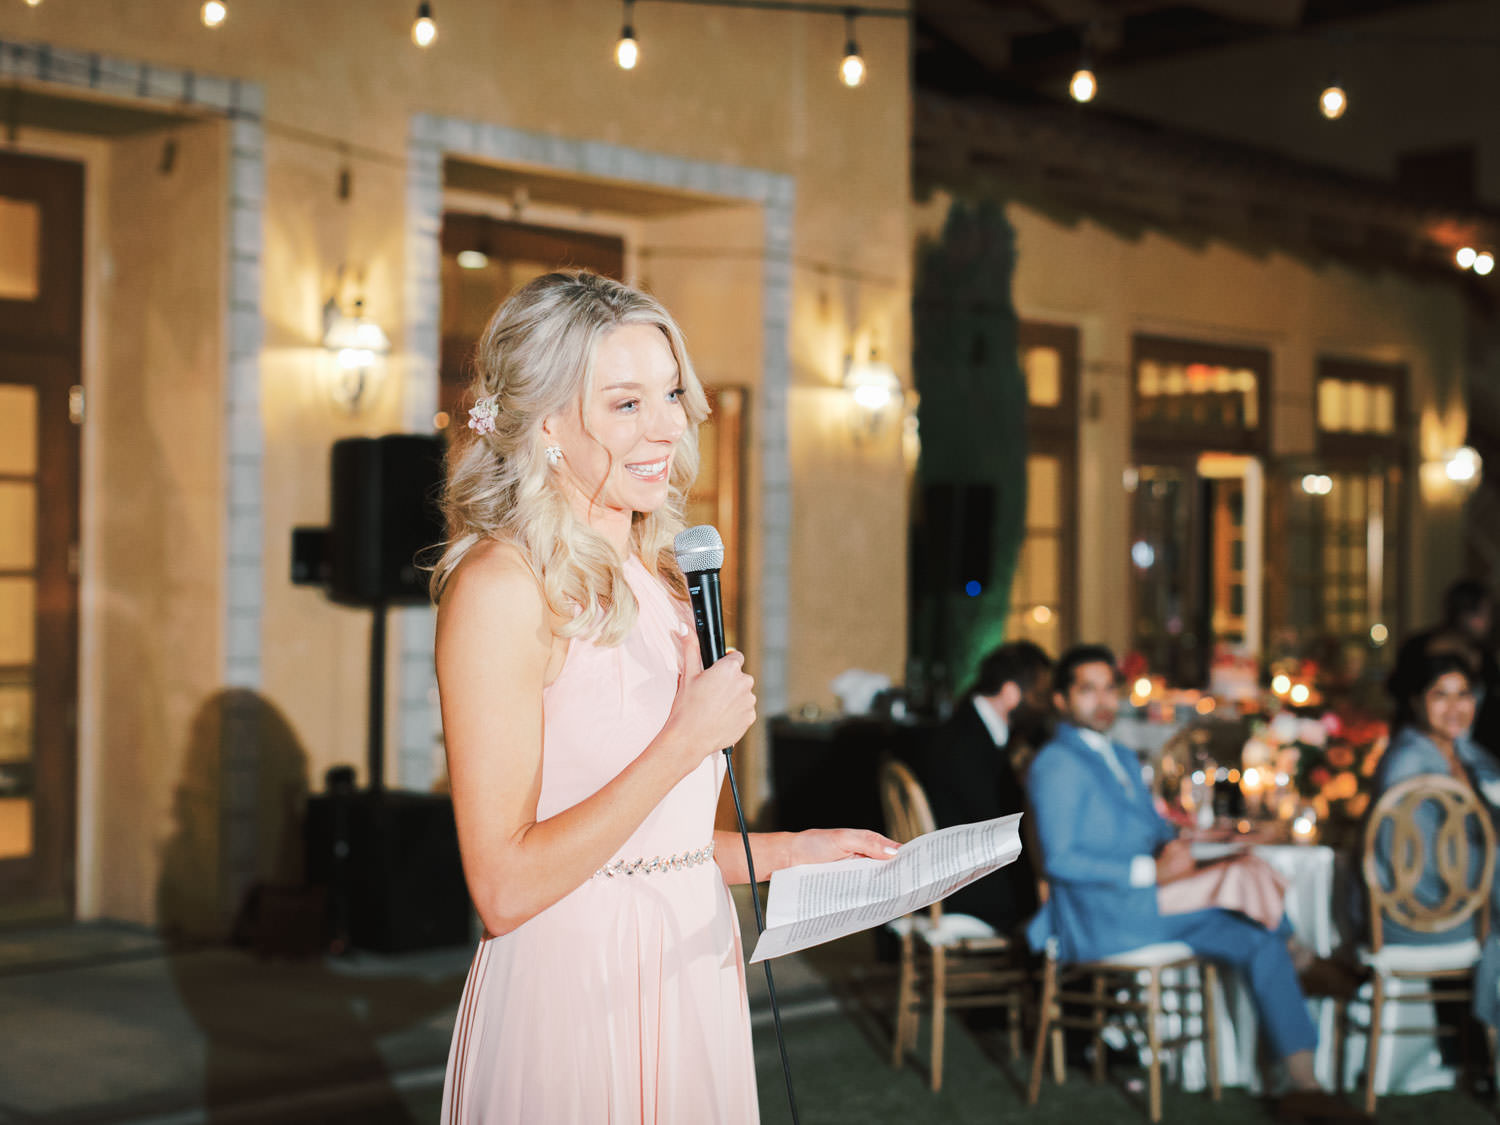 Maid of honor toast. Miramonte Resort wedding reception. Photography by Cavin Elizabeth.